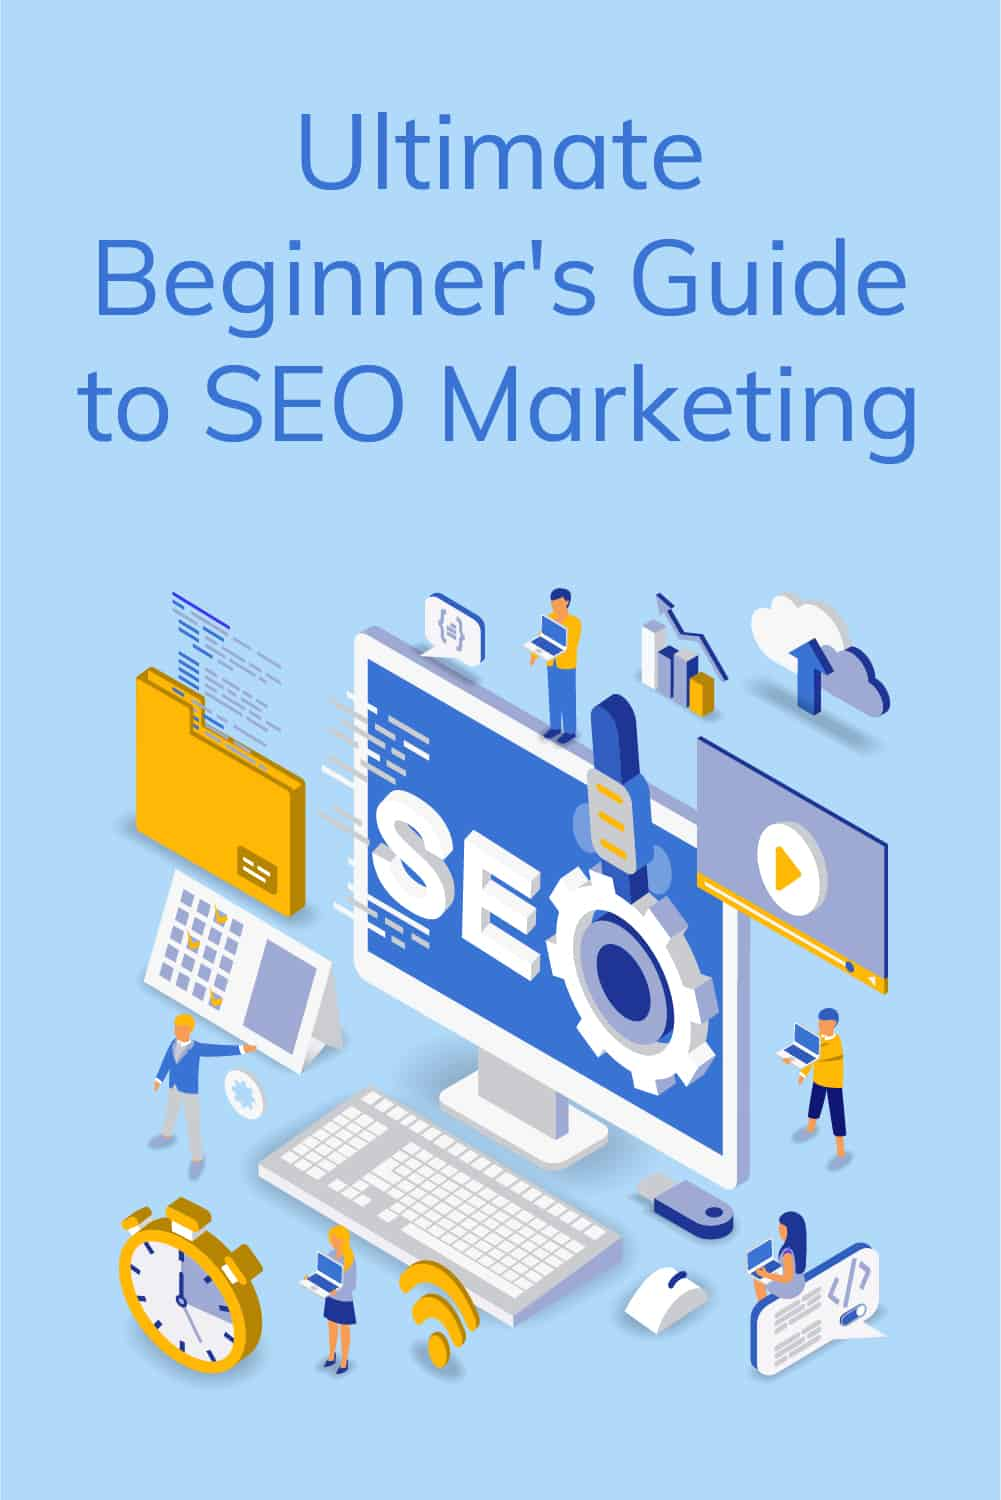 Wondering what SEO marketing is and how it affects the search engine visibility of your website and revenue? We've made this easy-to-digest SEO guide for newbies, just like you. Enjoy it! via @scopedesign